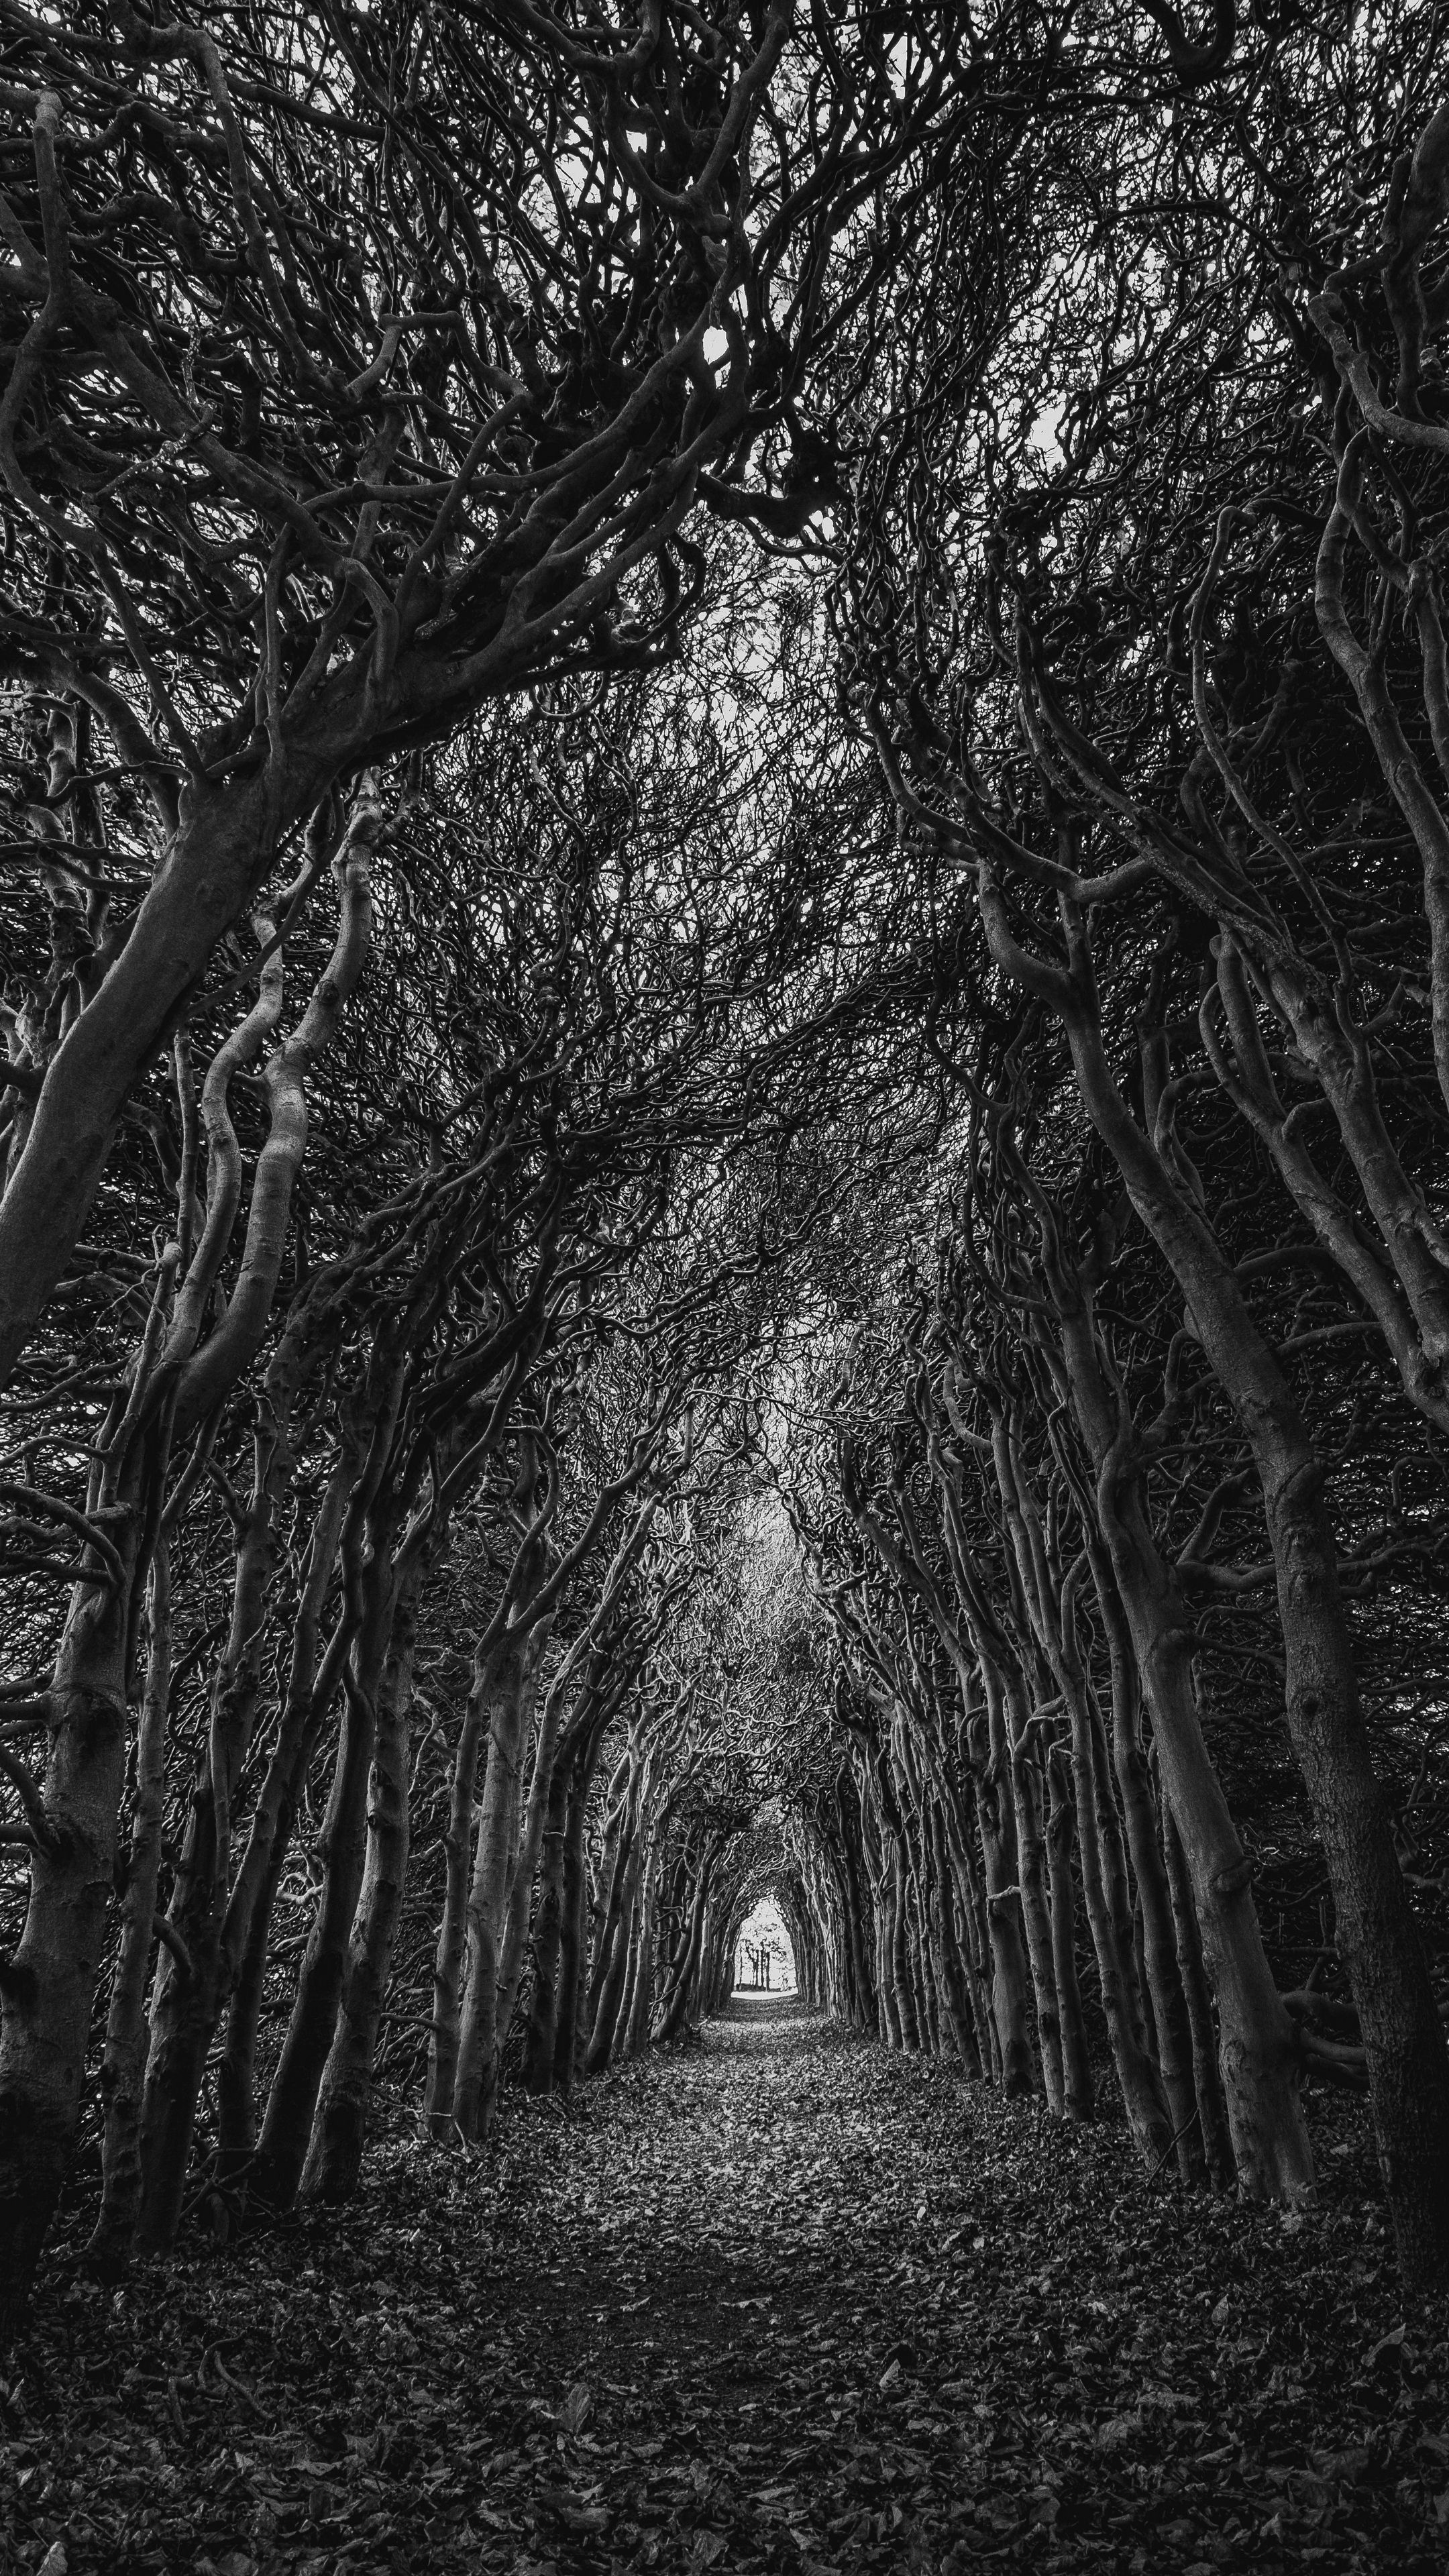 Nature Trees Branches Bw Android Wallpapers 4k Hd Papel De Parede Preto E Branco Papel De Parede Preto Wallpapers Paisagens